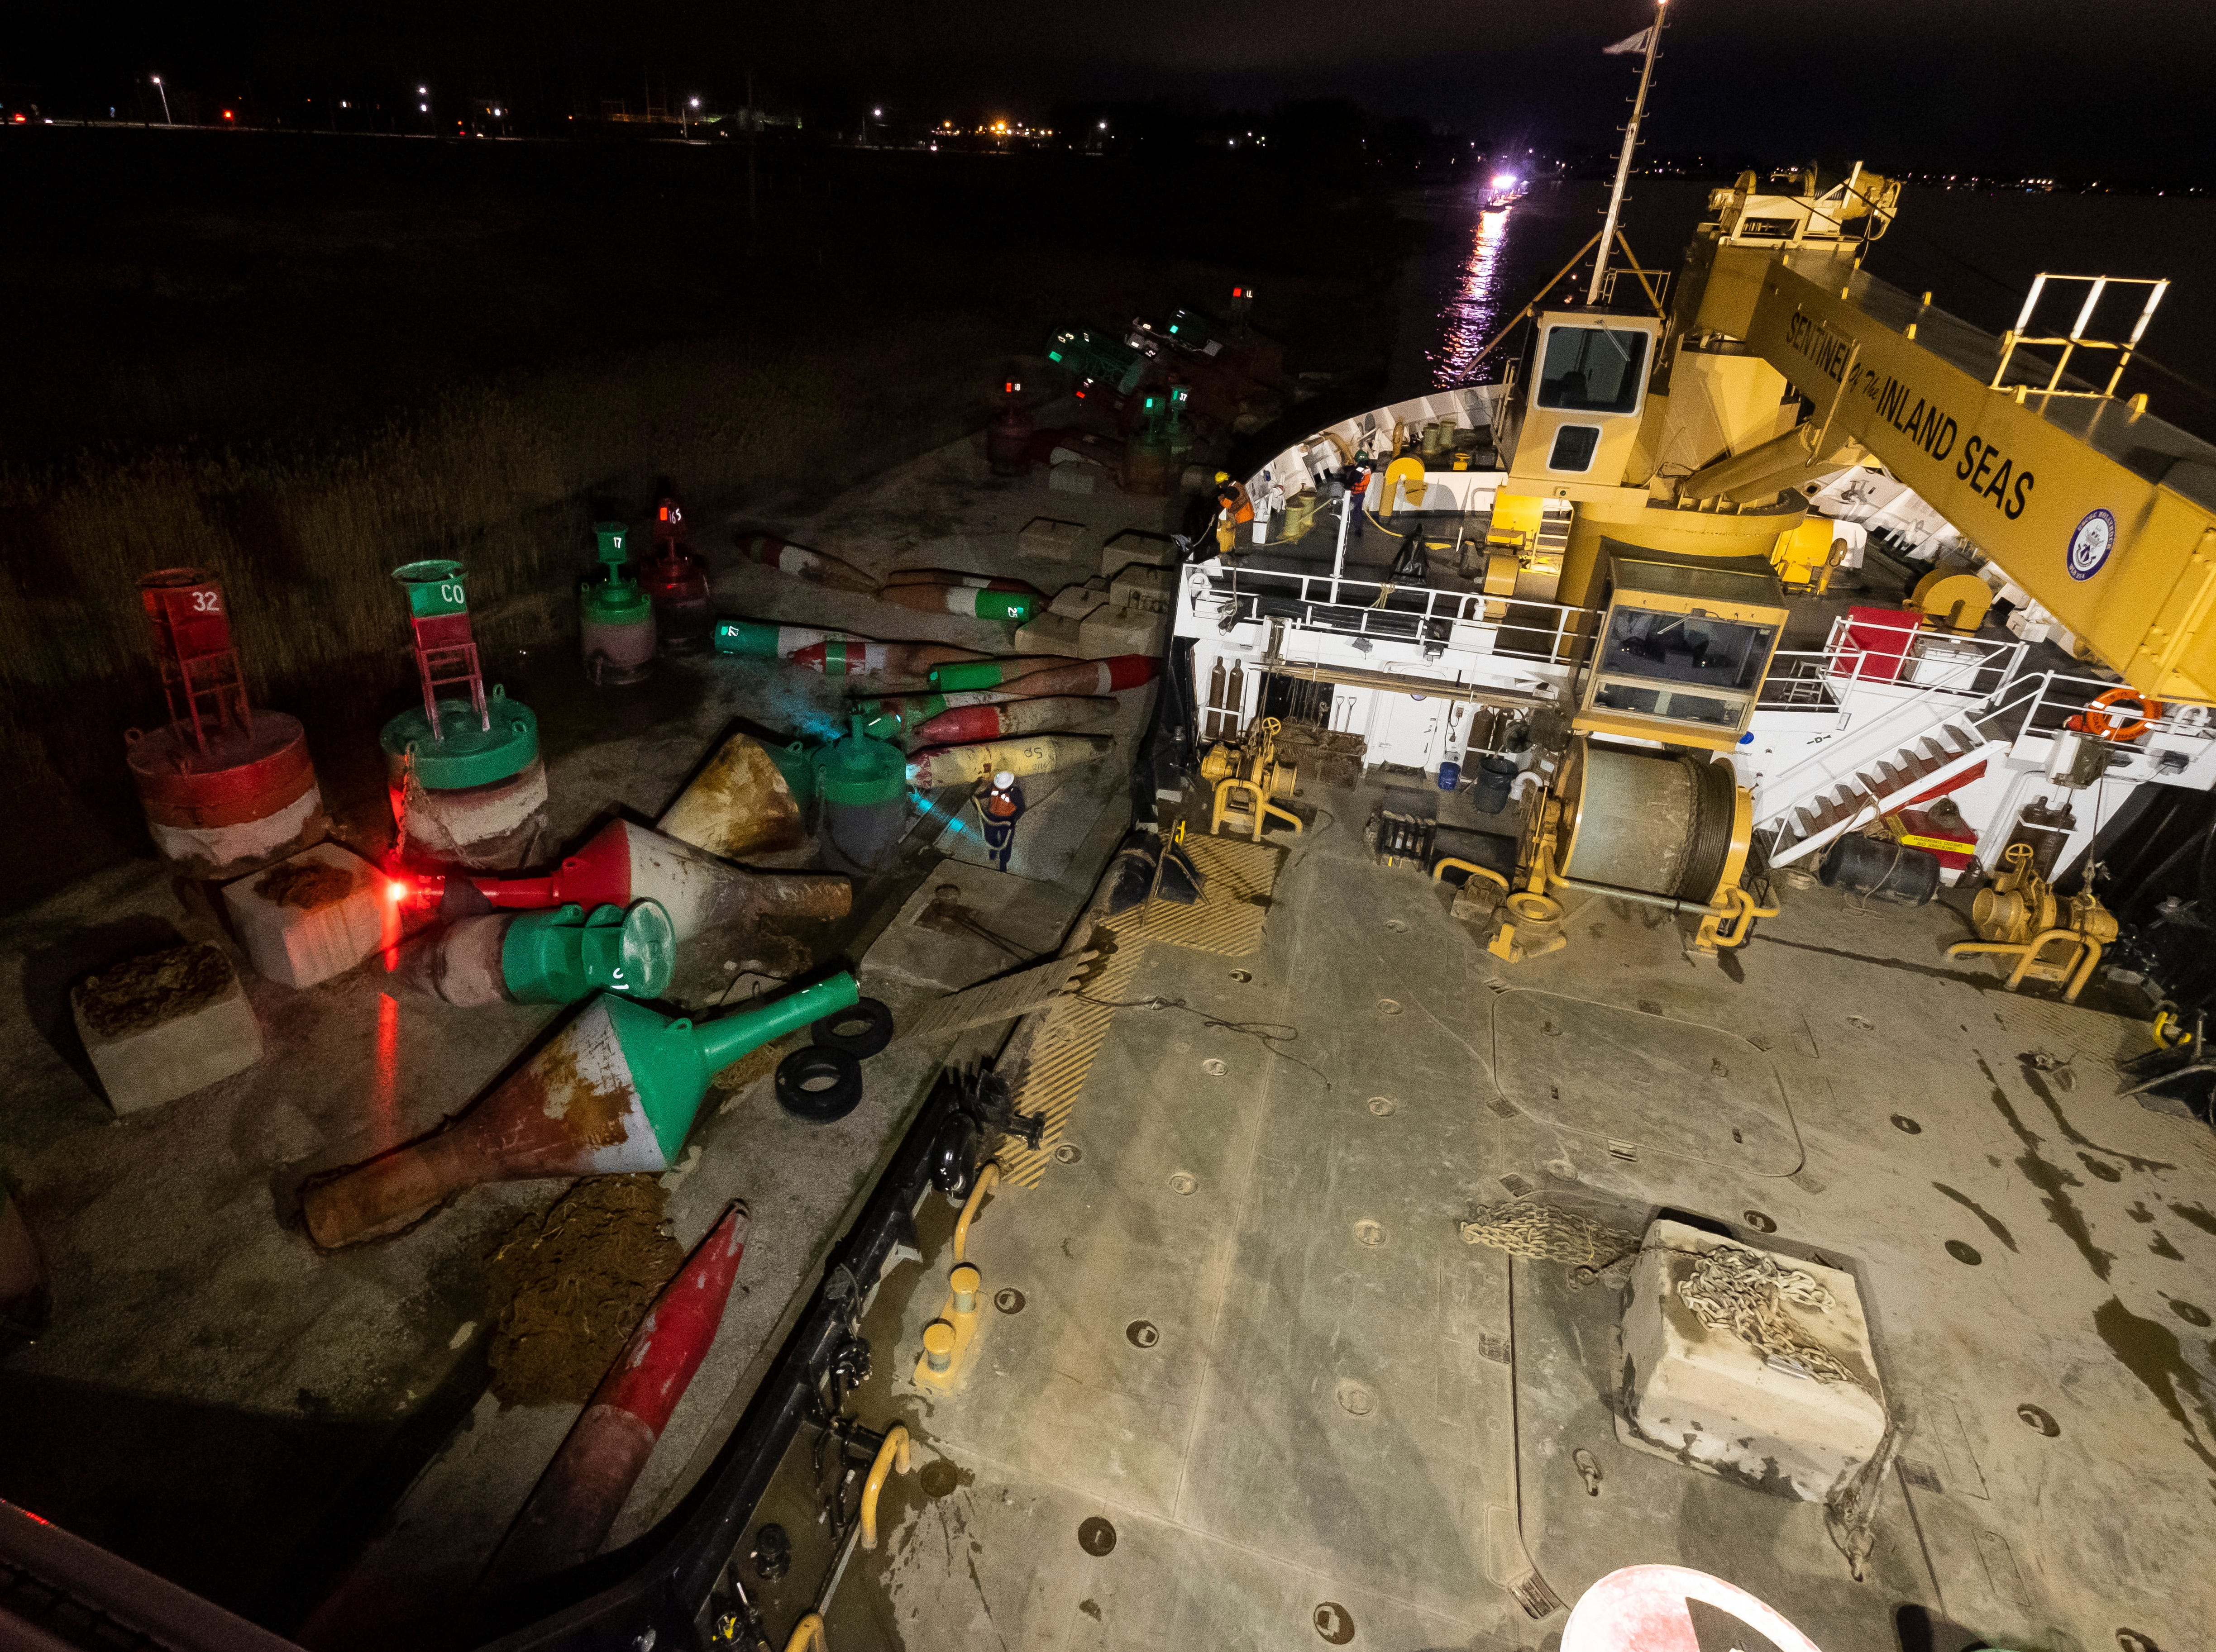 Lights on buoys flash in the darkness at the USCGC Hollyhock's mooring site Thursday, April 25, 2019 at Blue Water Aggregates in Marysville. The buoys will be loaded onto the ship's buoy deck before it gets underway the following morning.